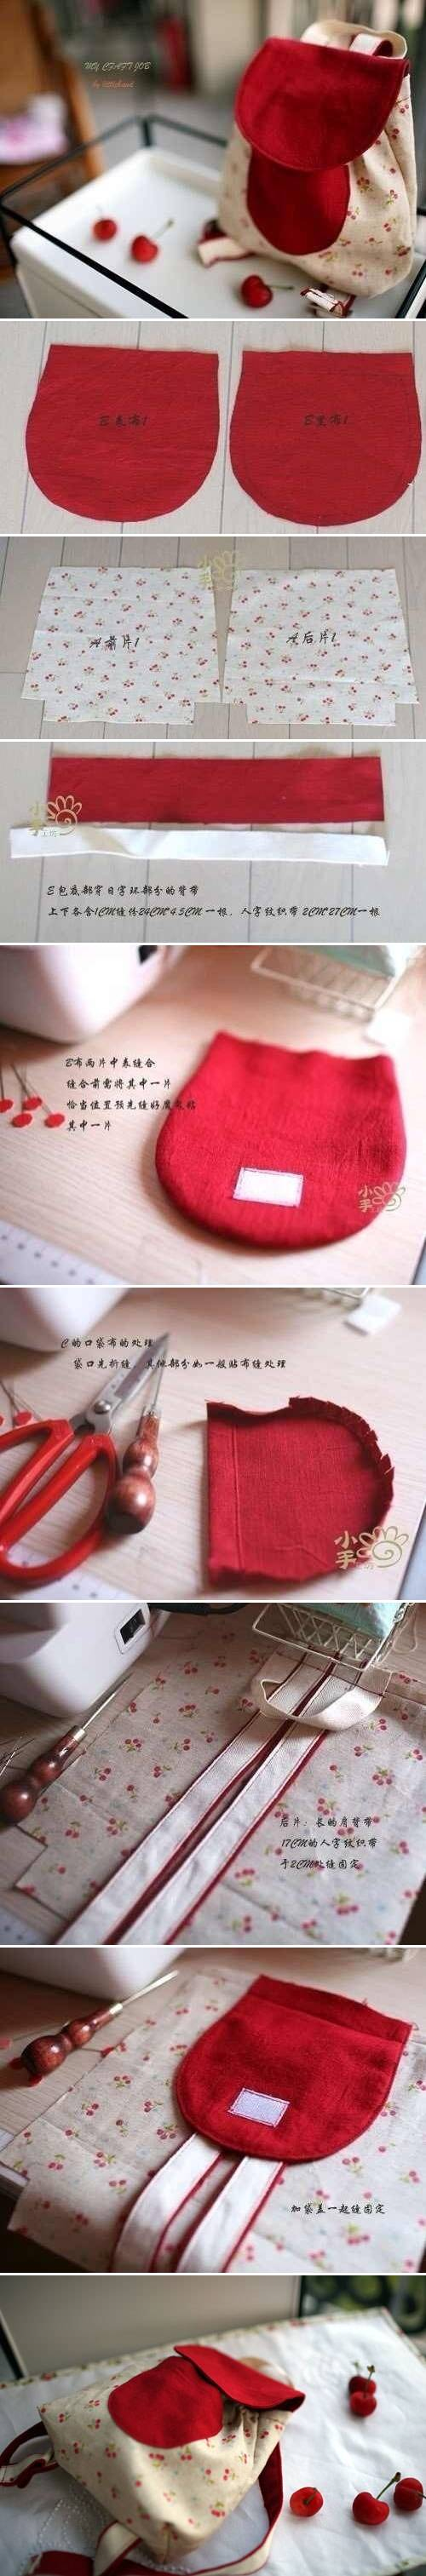 How To Make Cute Little Backpack step by step DIY tutorial instructions